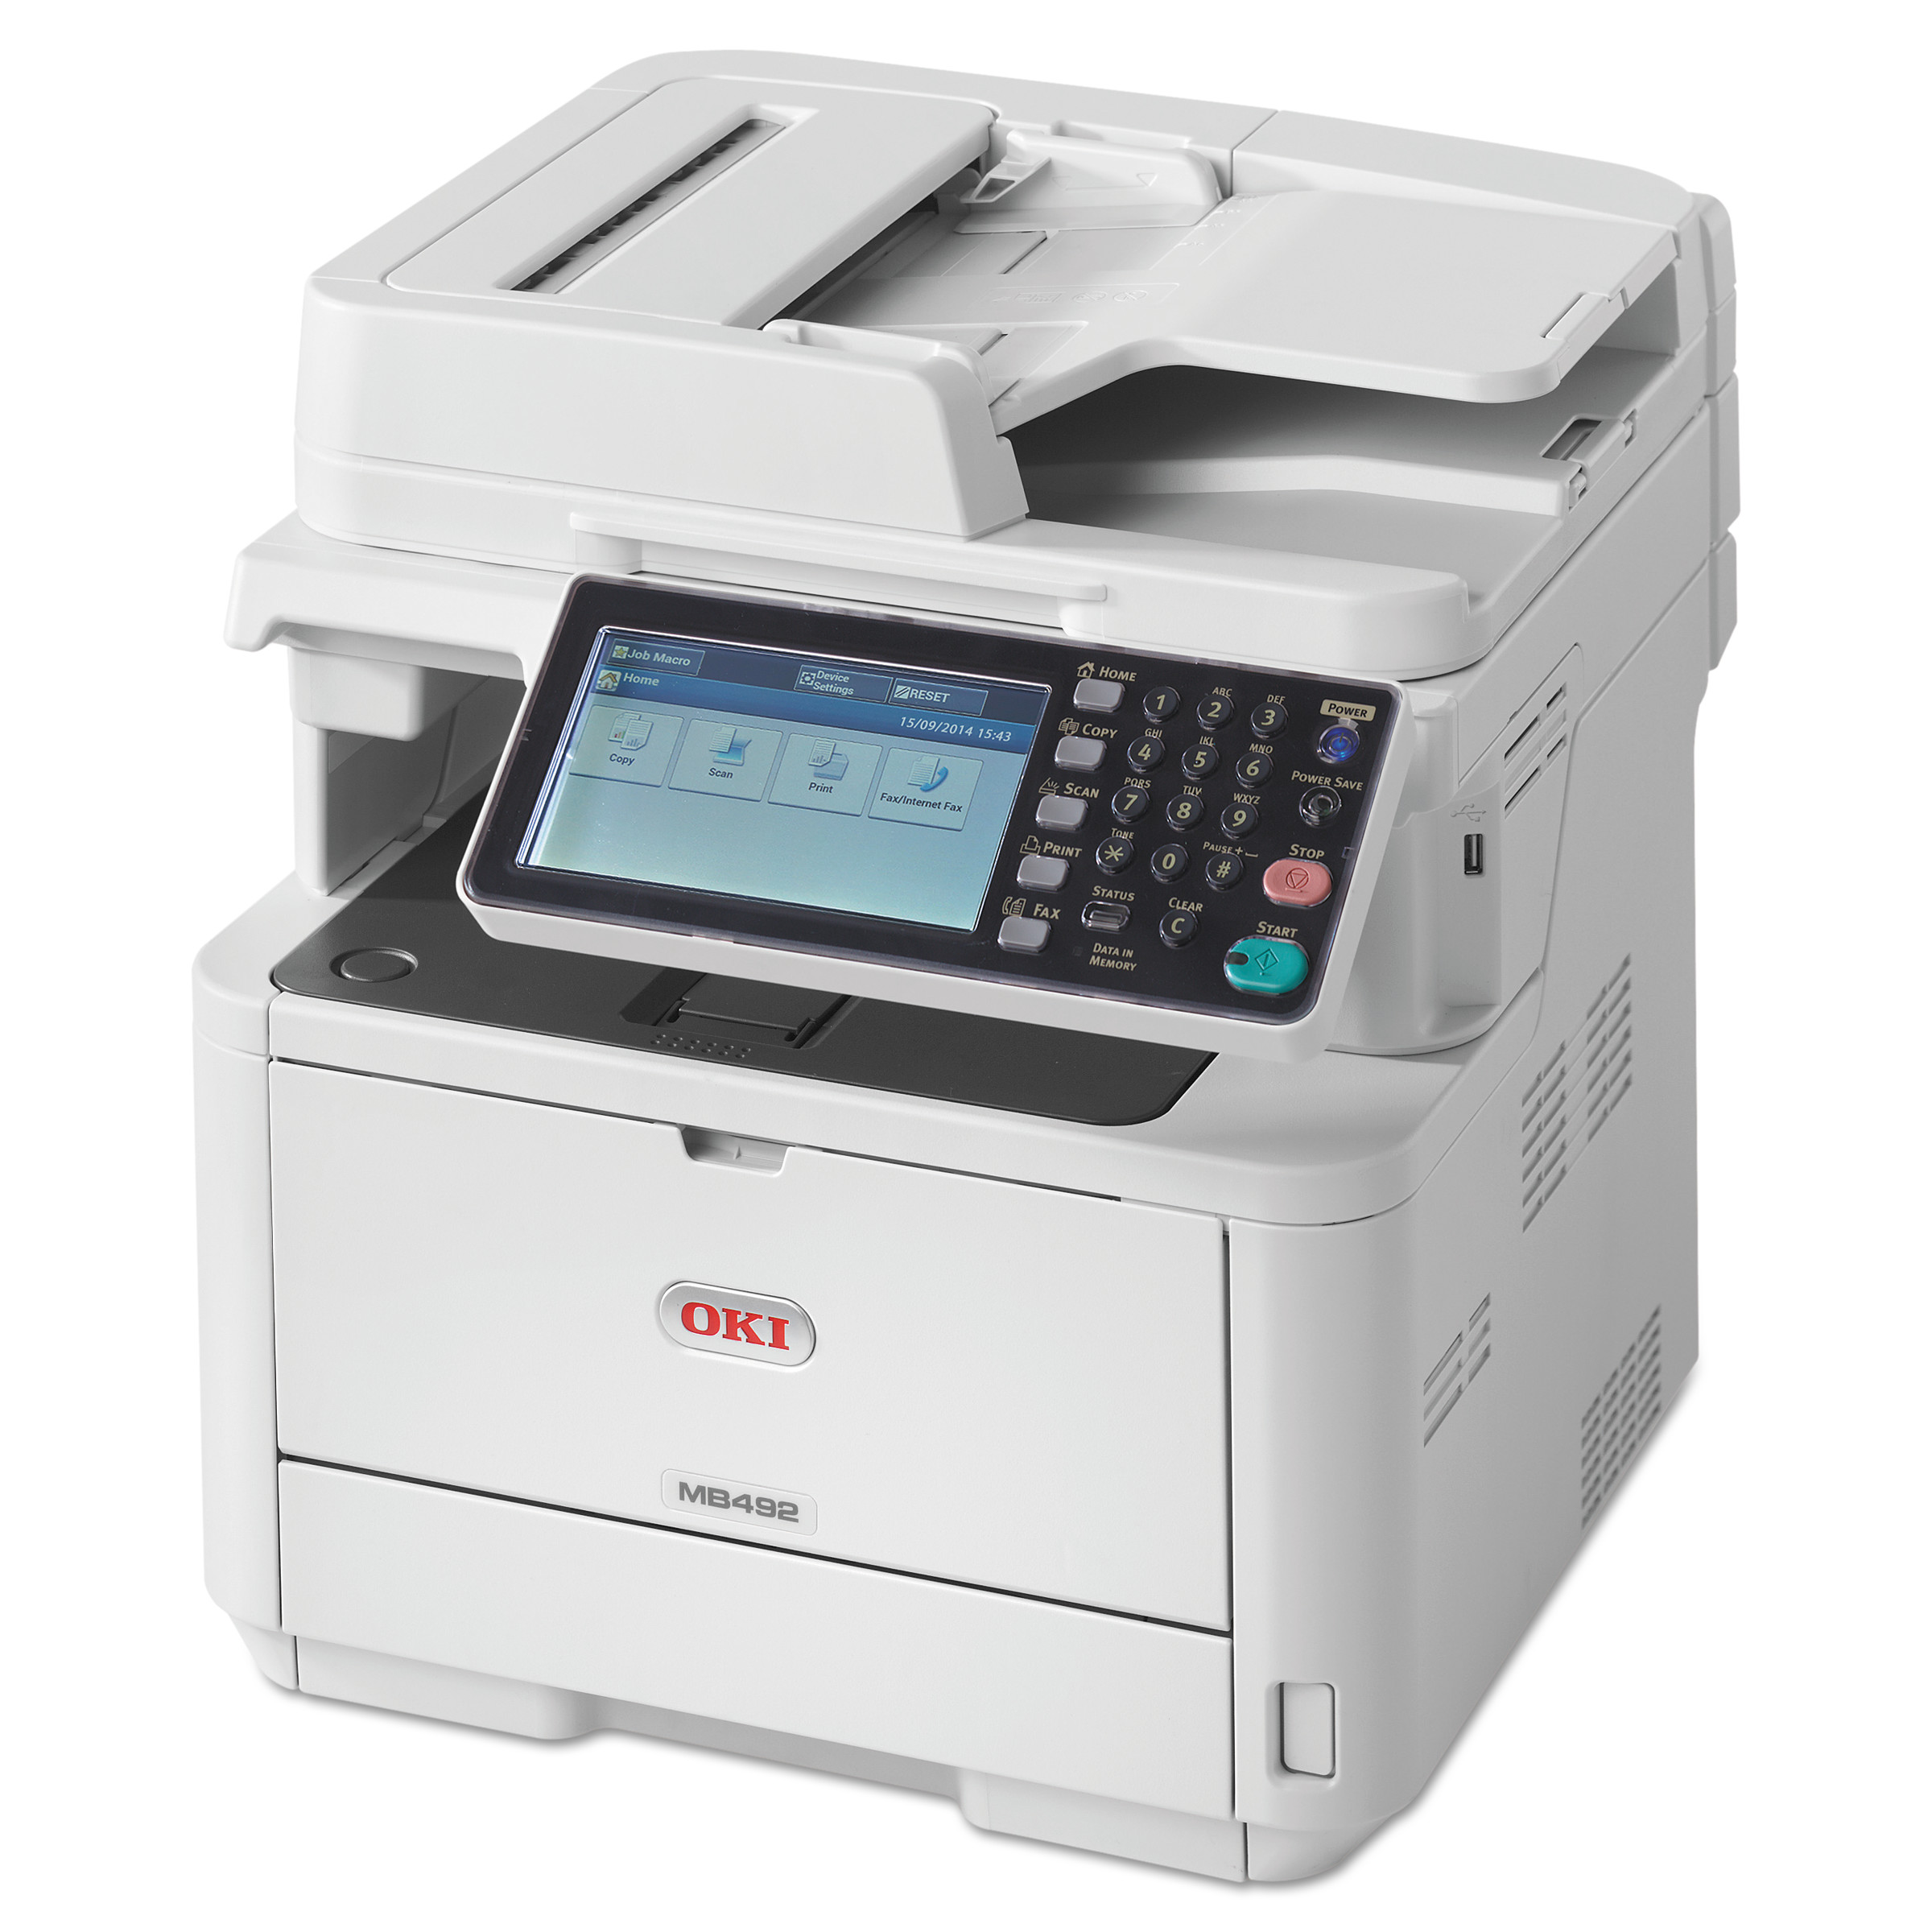 OKI MB492 - multifunction printer (B/W)